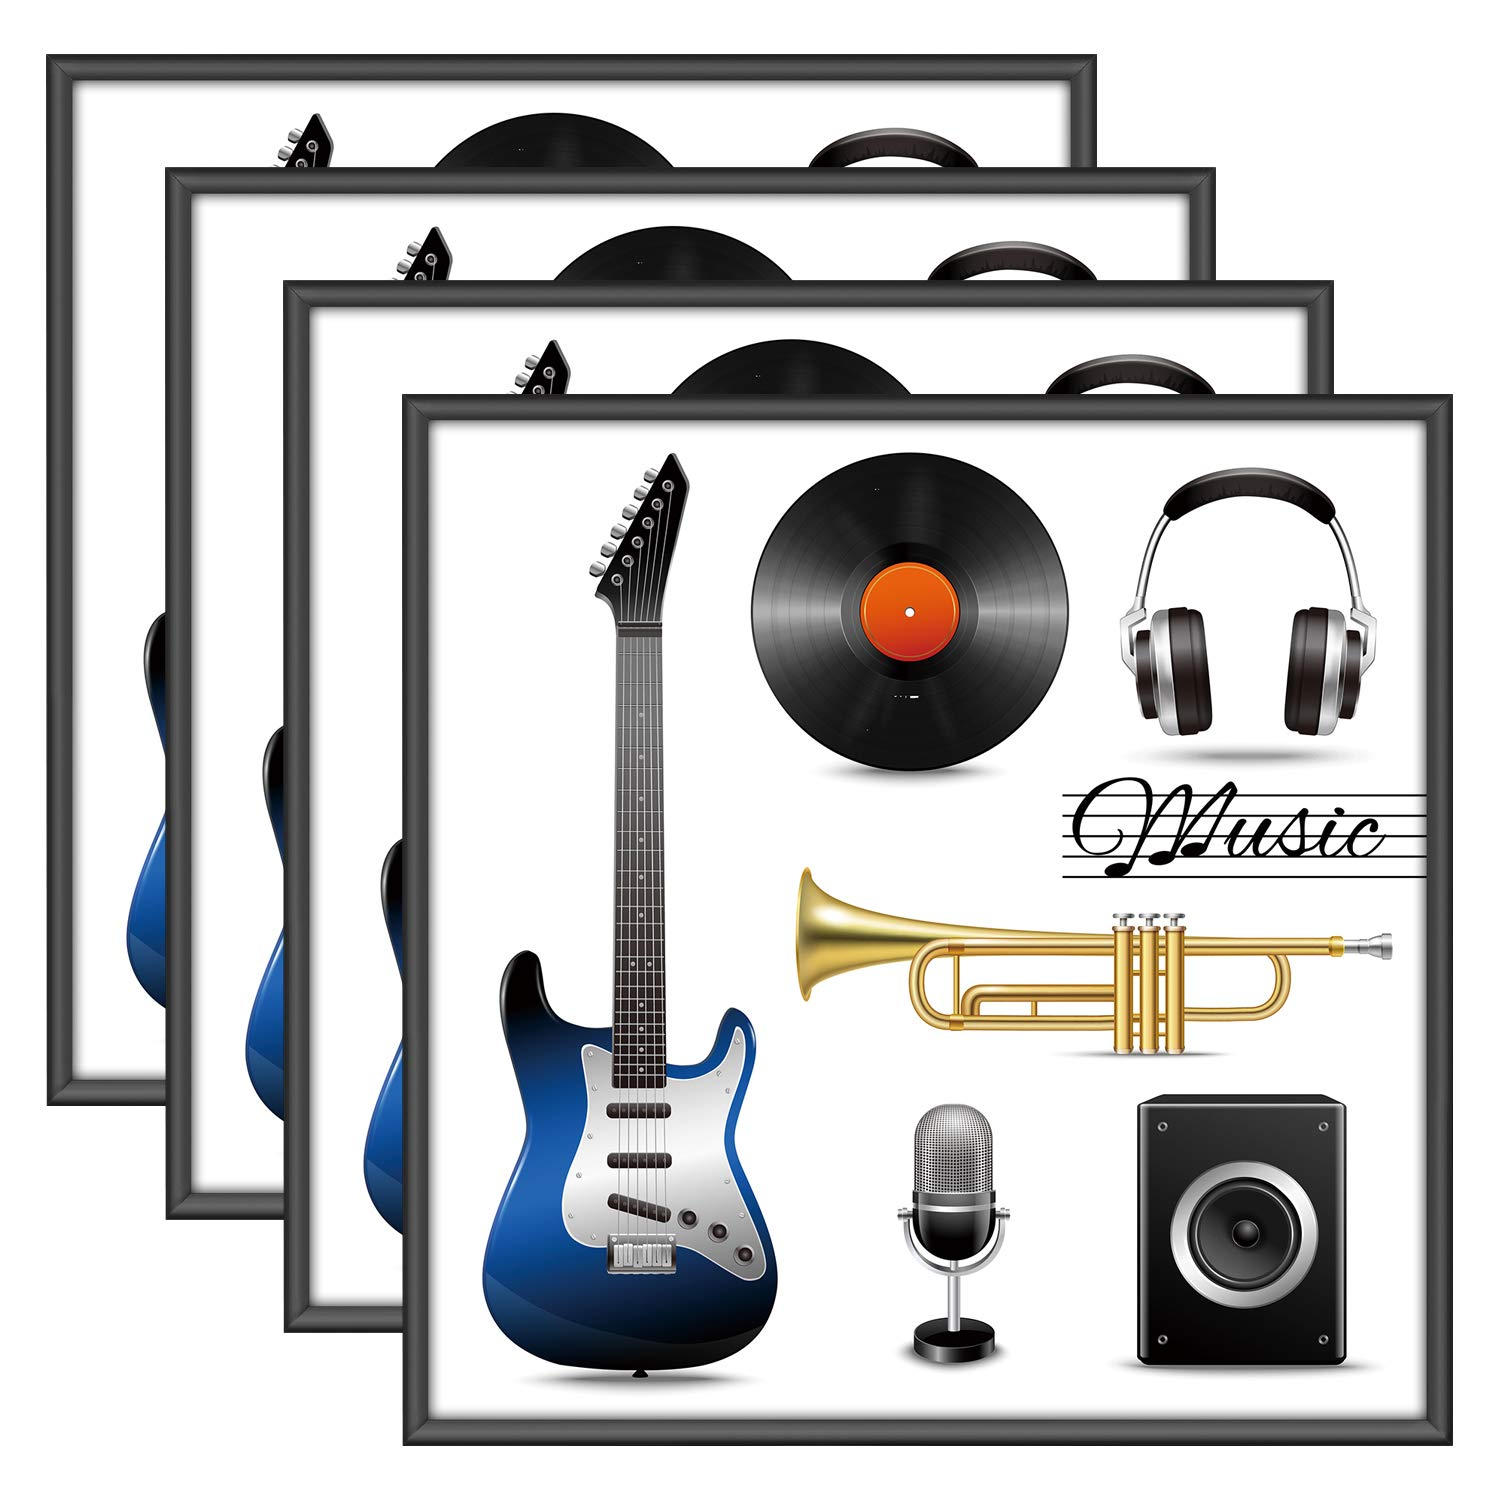 ONE WALL Album Frame for Vinyl Record, Displays 12.5x12.5 Album Covers, Aluminum Frame, Set of 4 - Wall Mounting Hardware Included